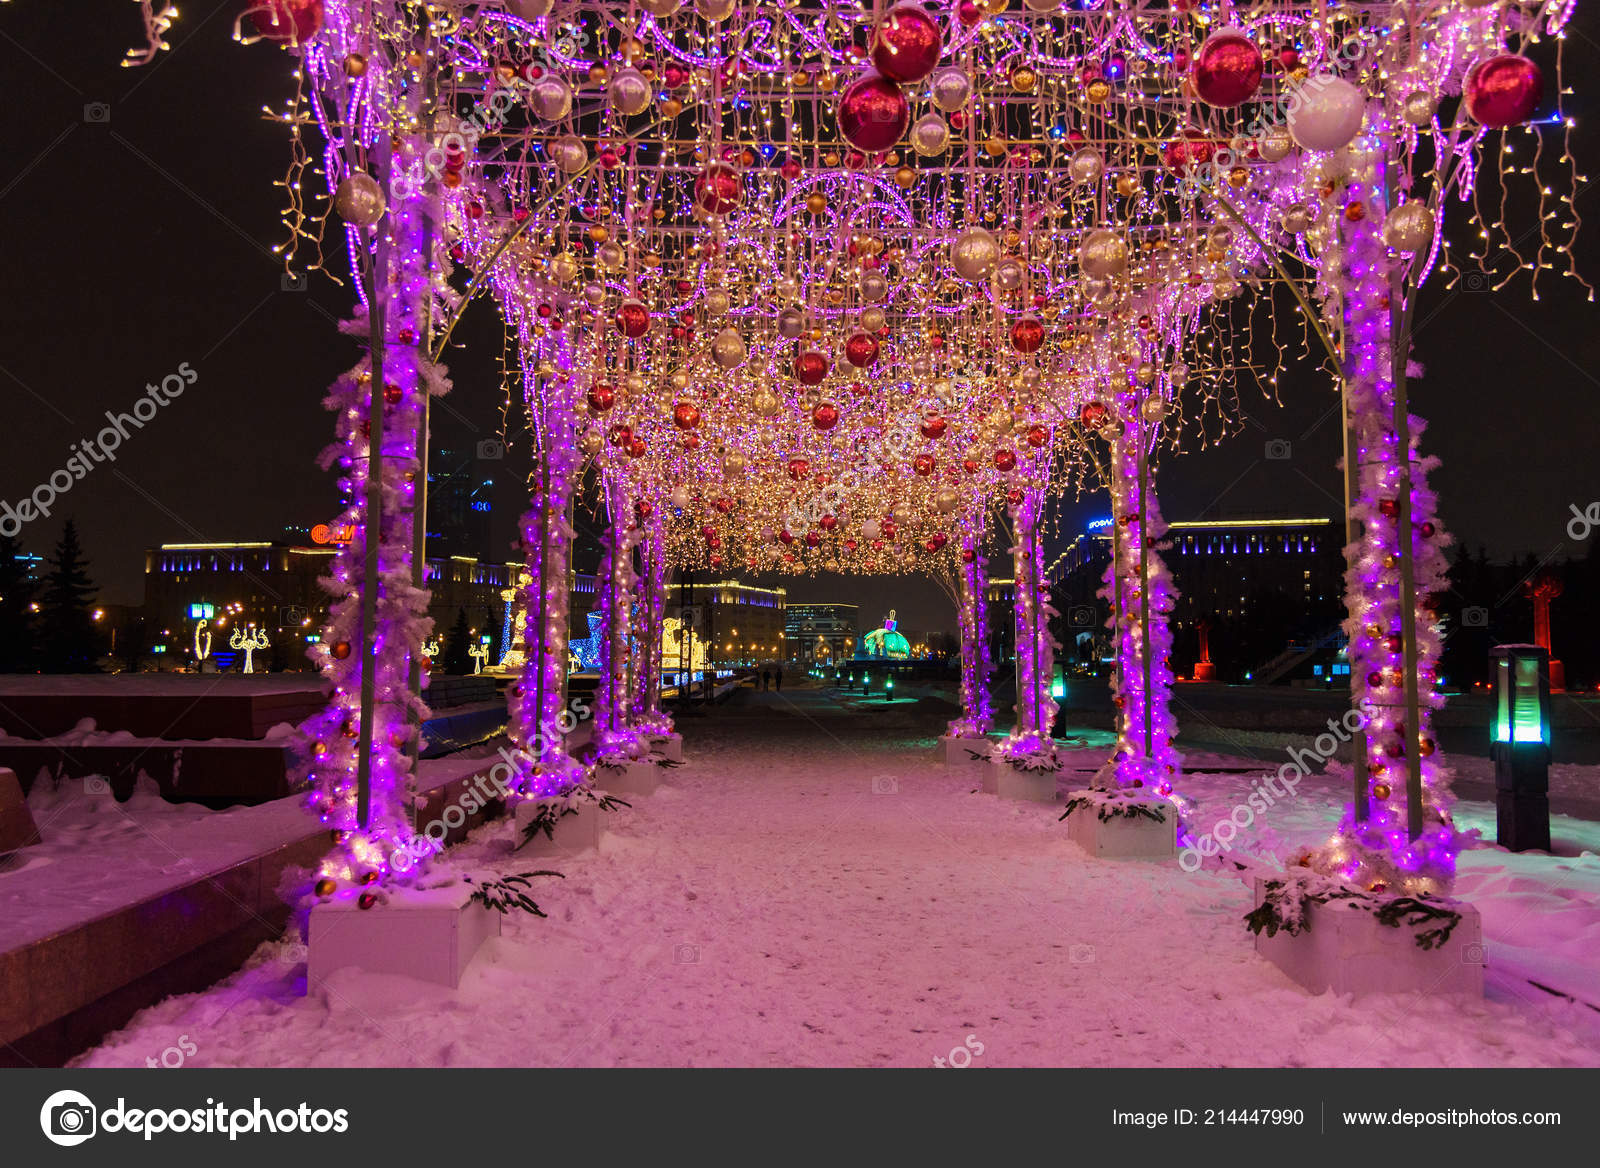 Moscow Russia January 2018 View Ton Light Ball Tent Decorated \u2014 Stock Photo & Moscow Russia January 2018 View Ton Light Ball Tent Decorated ...